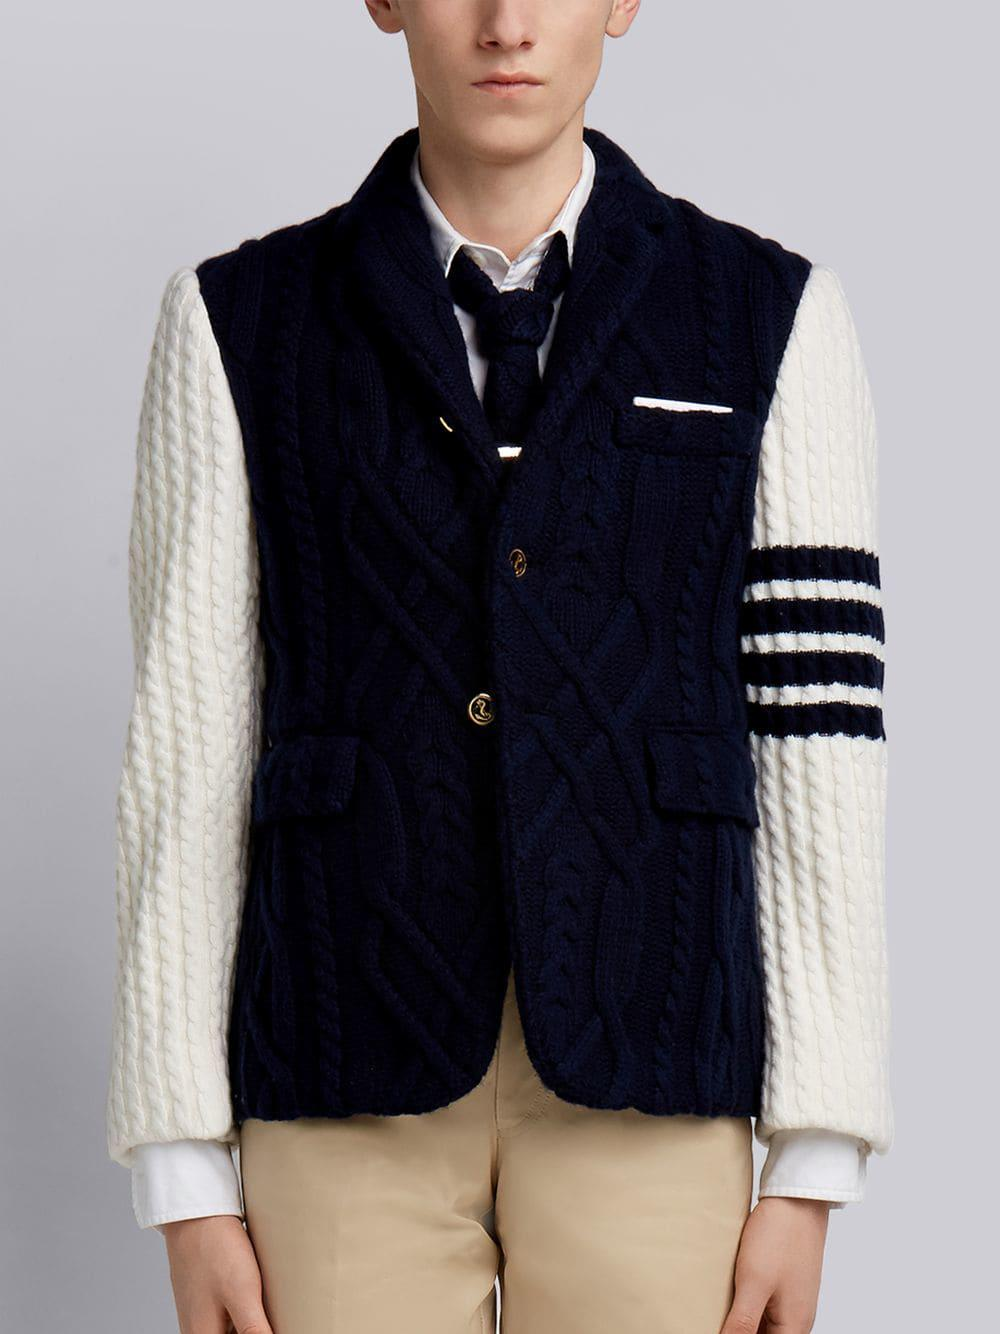 THOM BROWNE THOM BROWNE 4-BAR KNIT SLEEVE SPORT COAT,MJC215C0403312706644